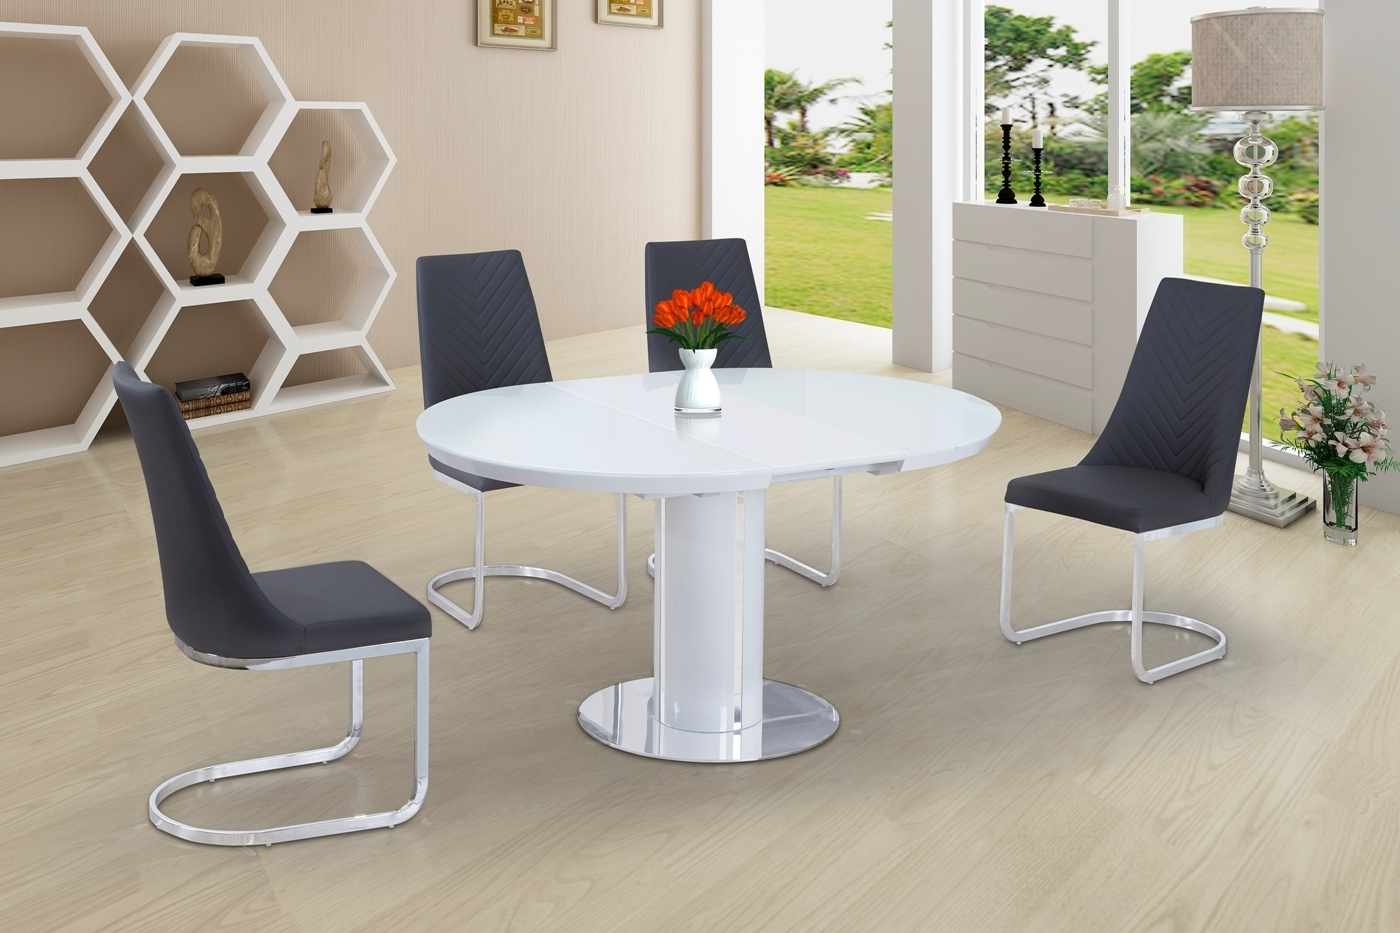 Details About Round White Glass High Gloss Dining Table And 4 Grey Chairs Set pertaining to dimensions 1400 X 933